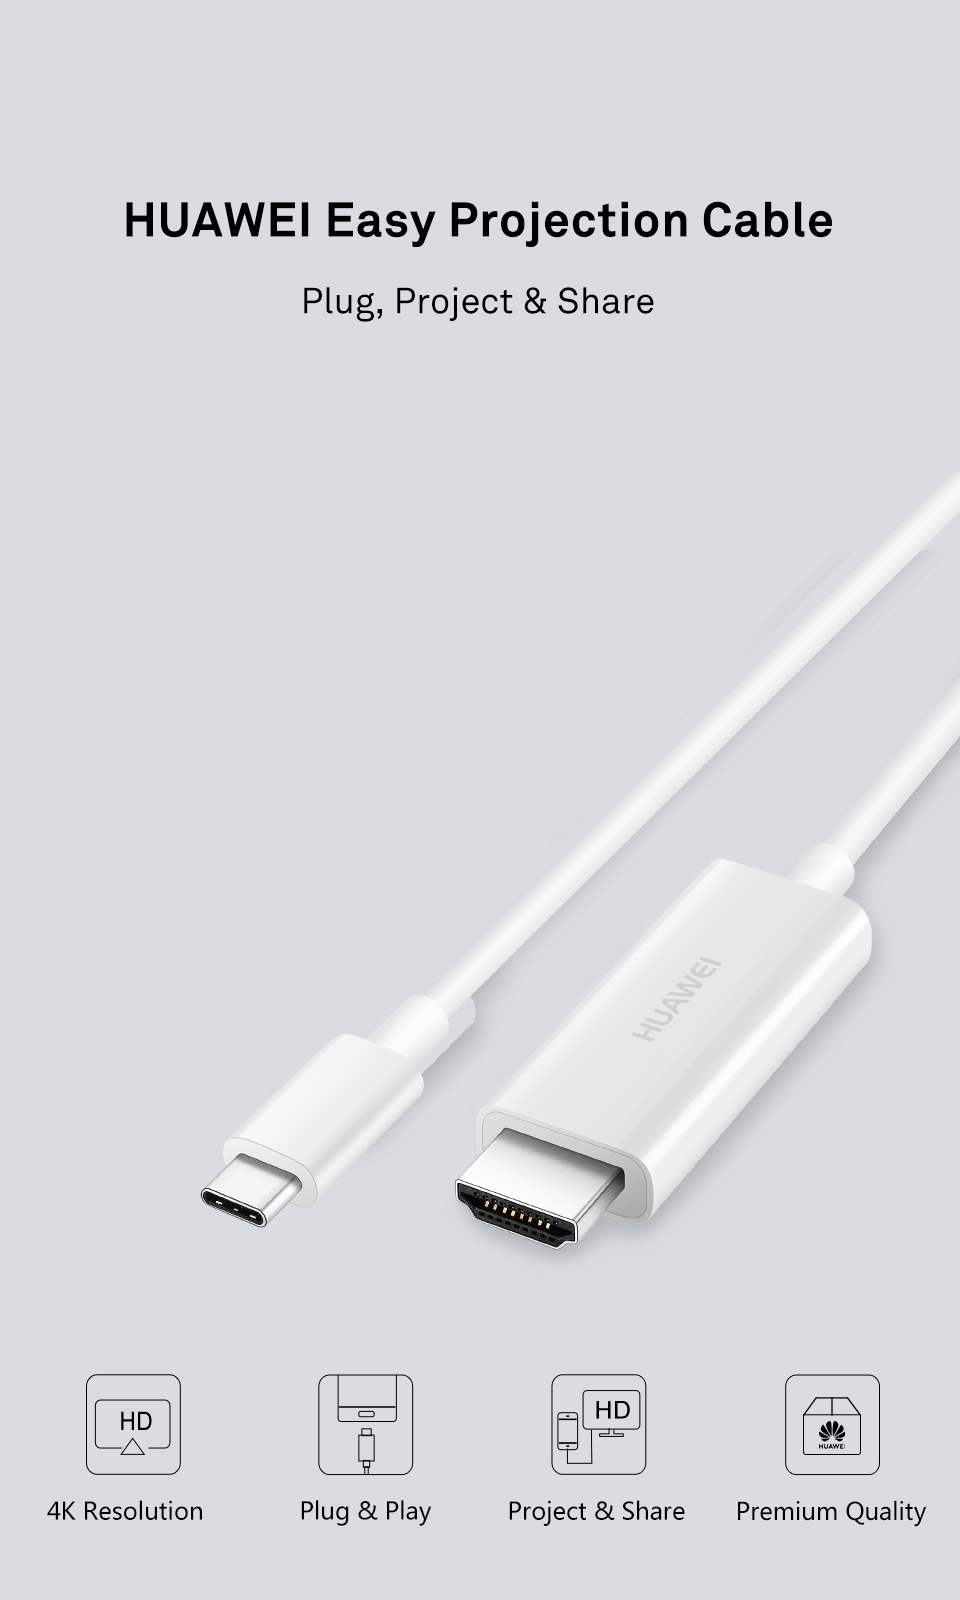 HUAWEI Easy Projection Cable